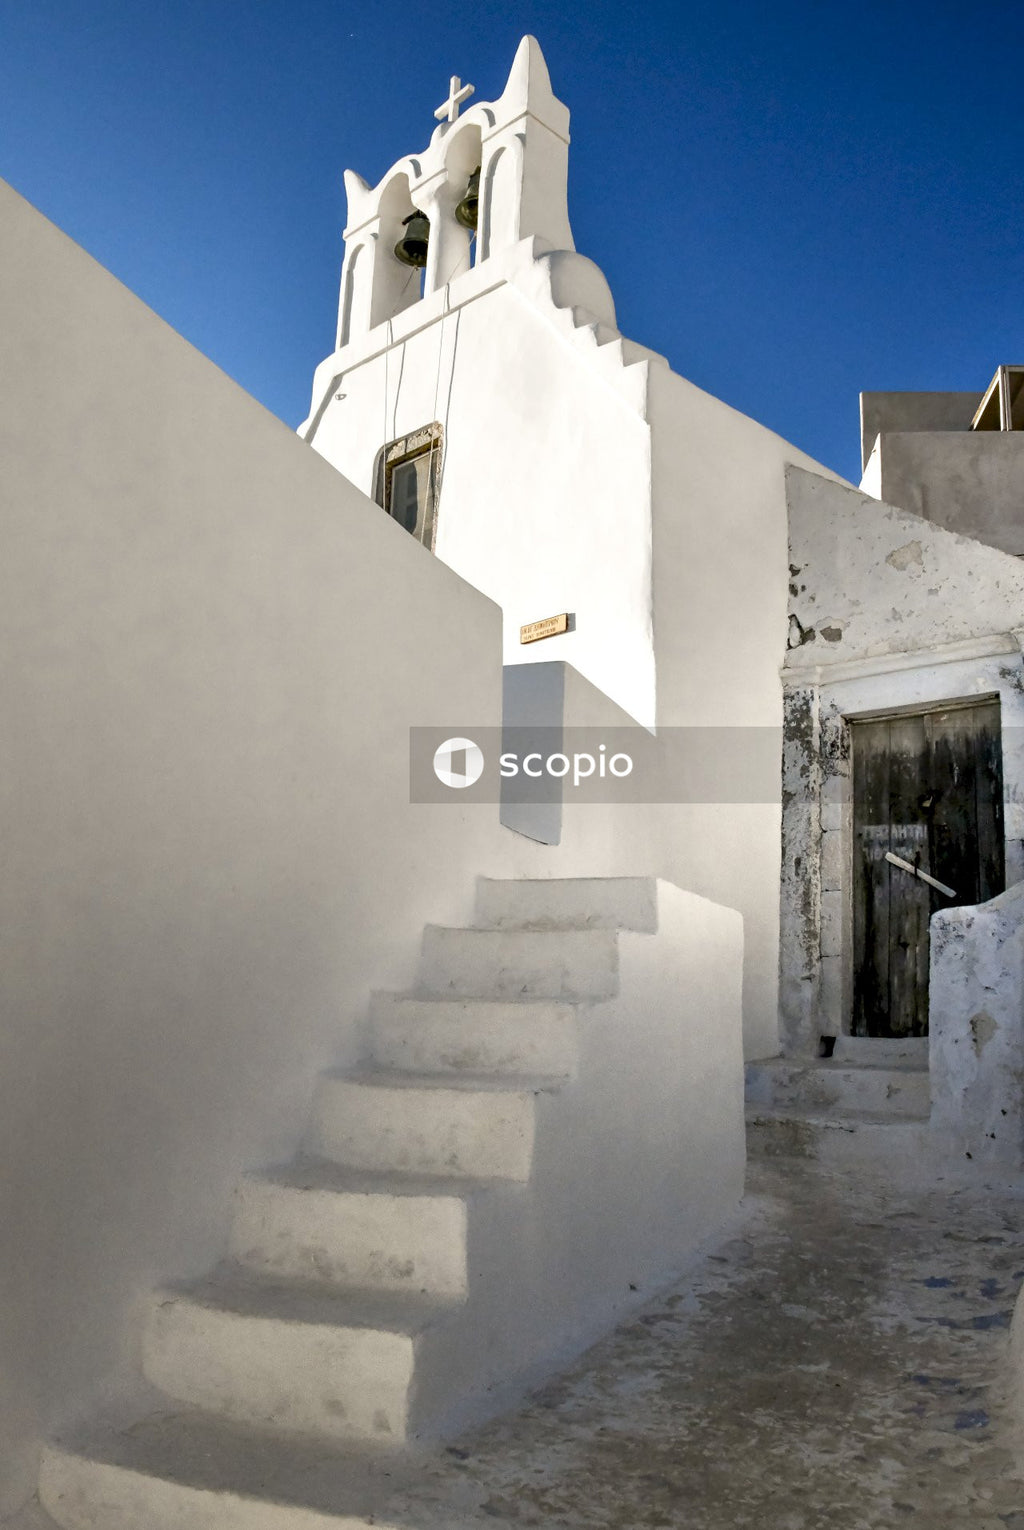 White concrete stairs